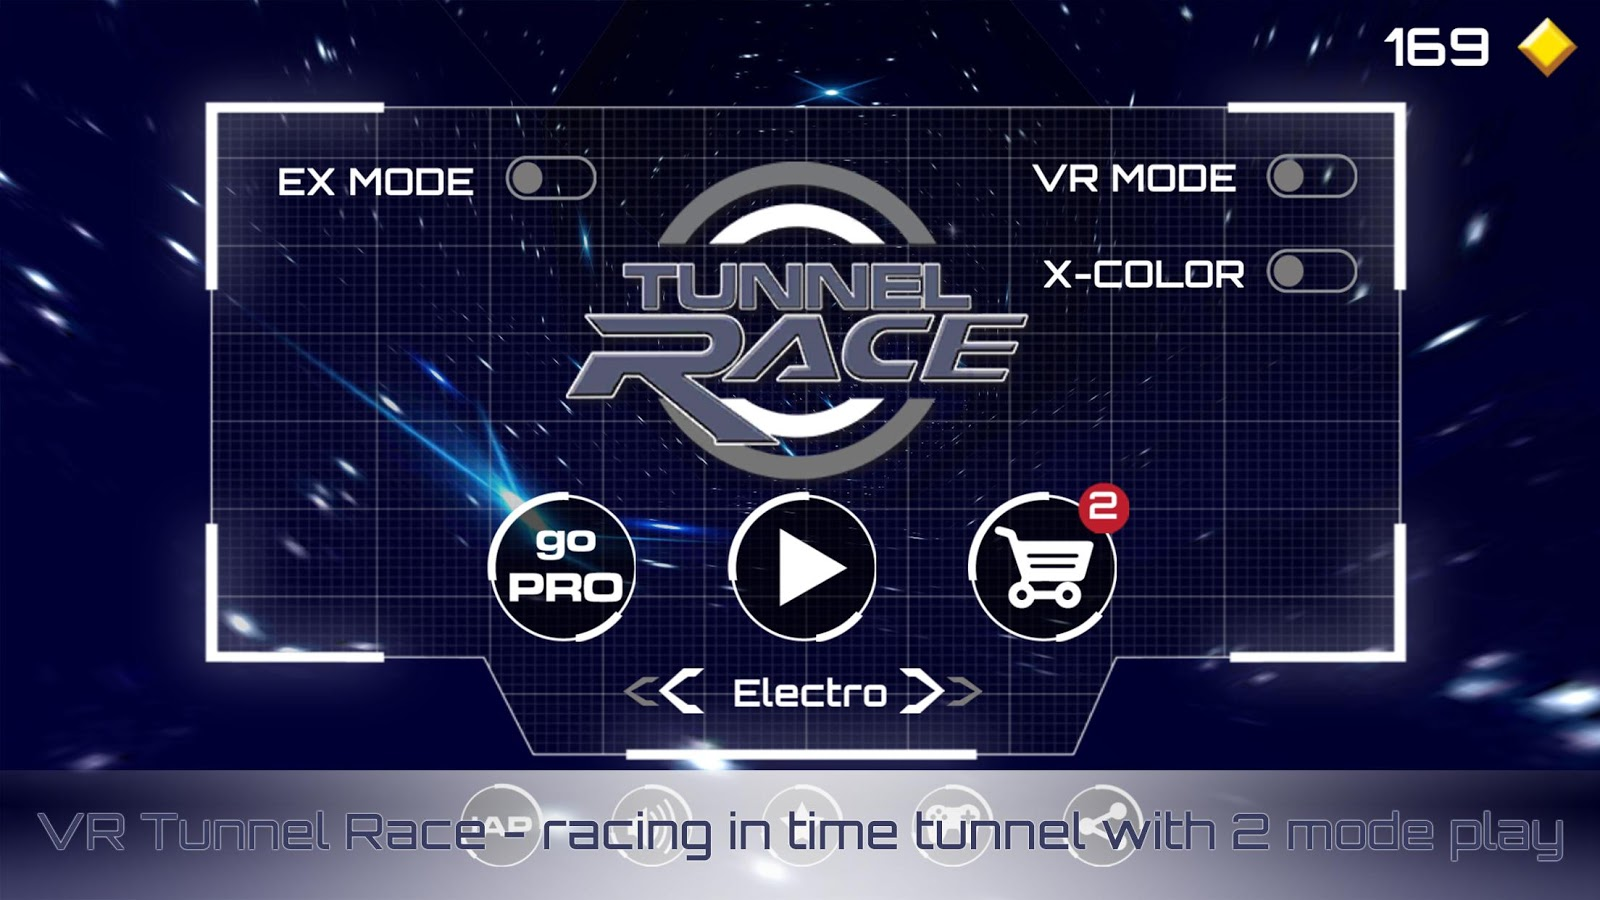 VR Tunnel Race Free (2 modes)- screenshot